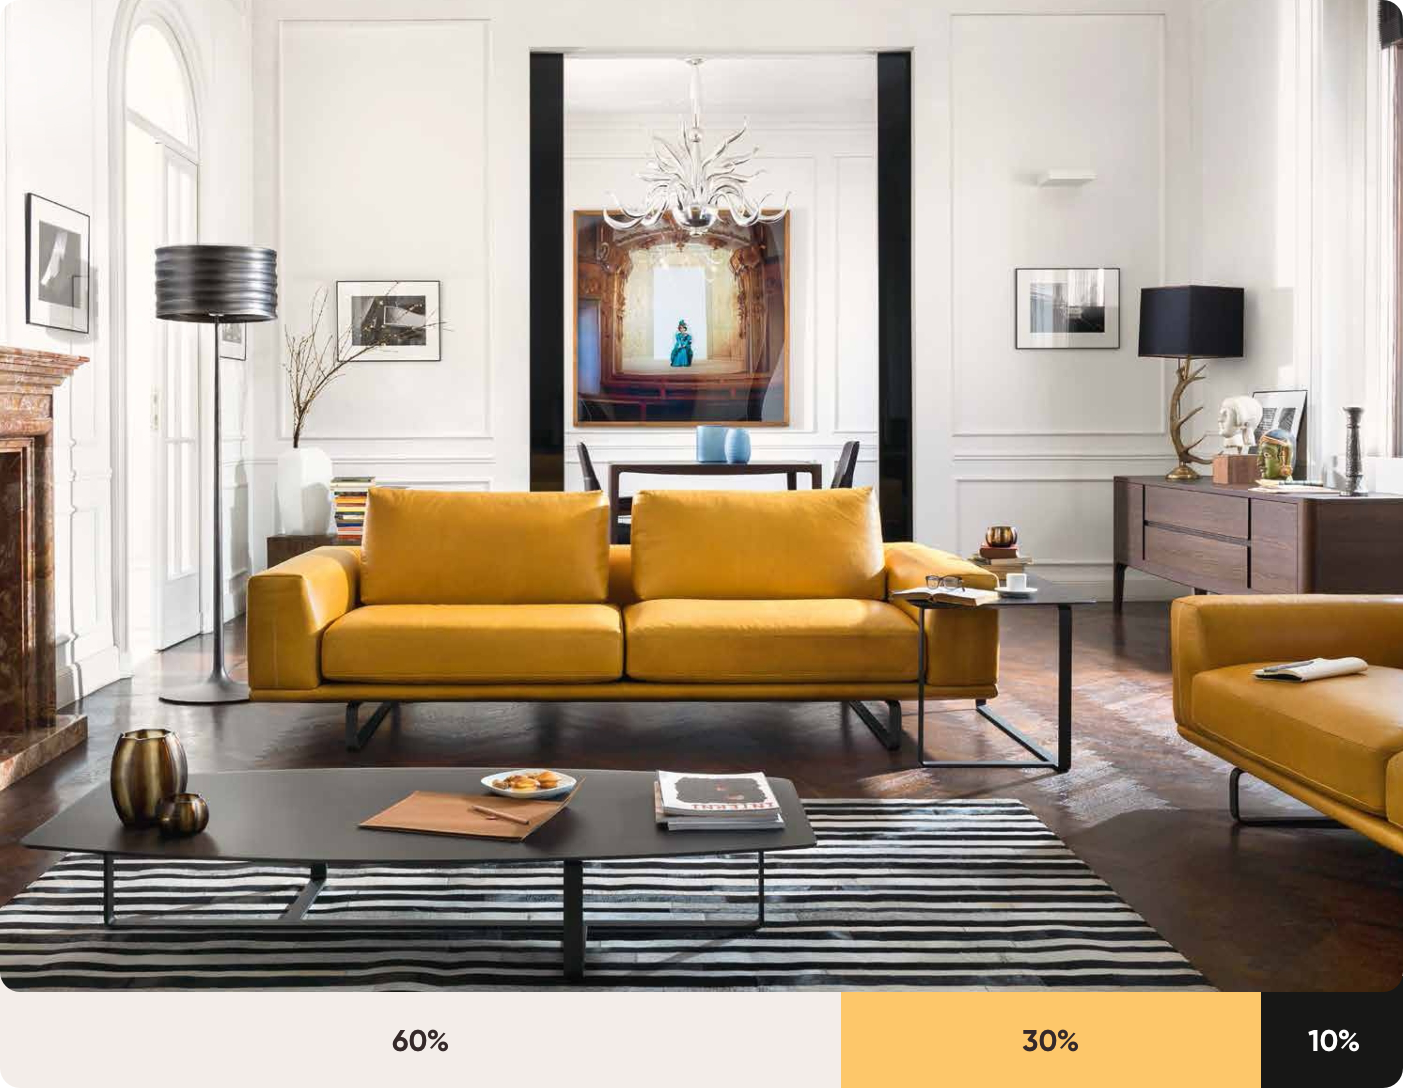 how use colors design prototypr black accent table project wall paints furnitures accesories nate berkus gold side adjustable lamp ethan allen oval coffee small bedroom furniture